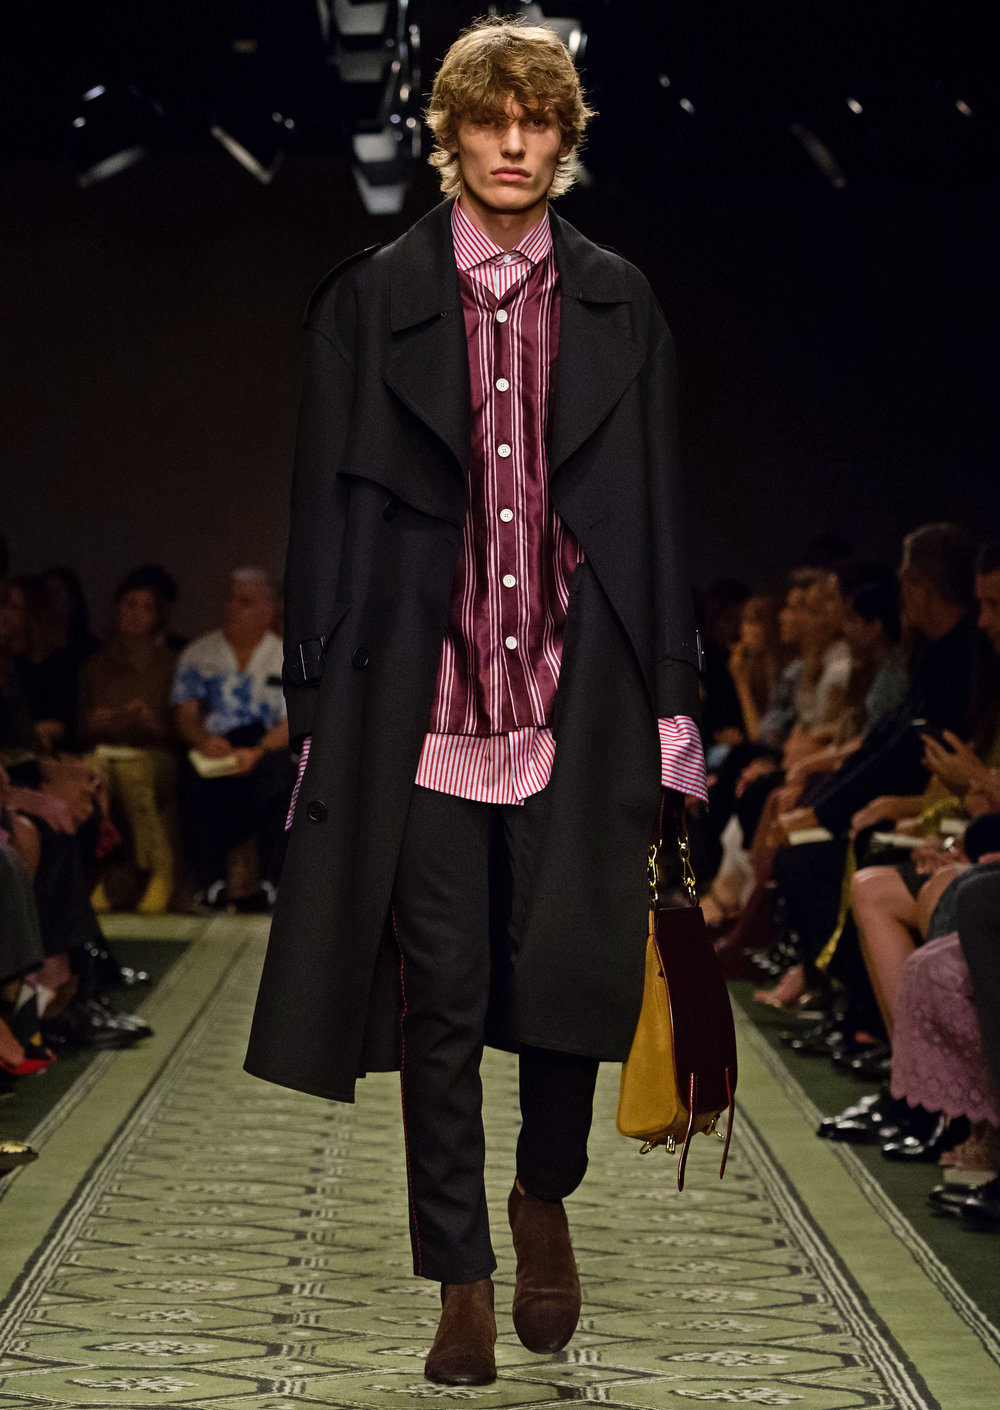 Burberry September 2016 Collection - Look 72.jpg